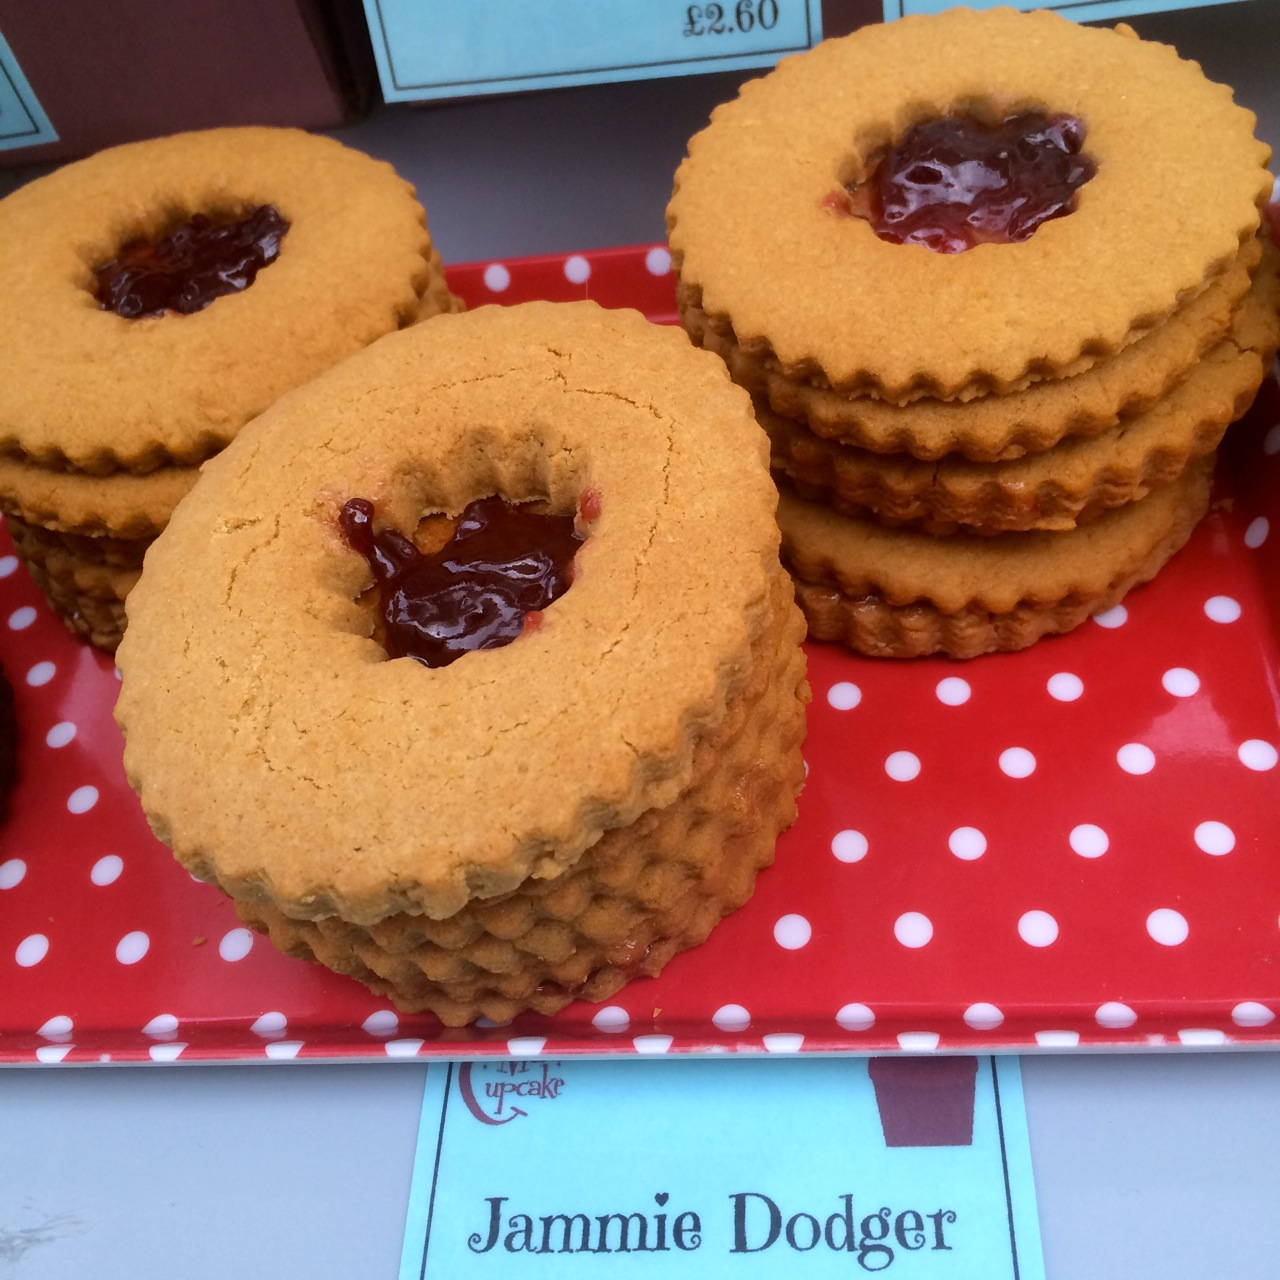 http://i2.wp.com/fatgayvegan.com/wp-content/uploads/2015/07/Jammie-Dodgers-by-Ms-Cupcake-at-Just-V-Show.jpg?fit=1280%2C1280